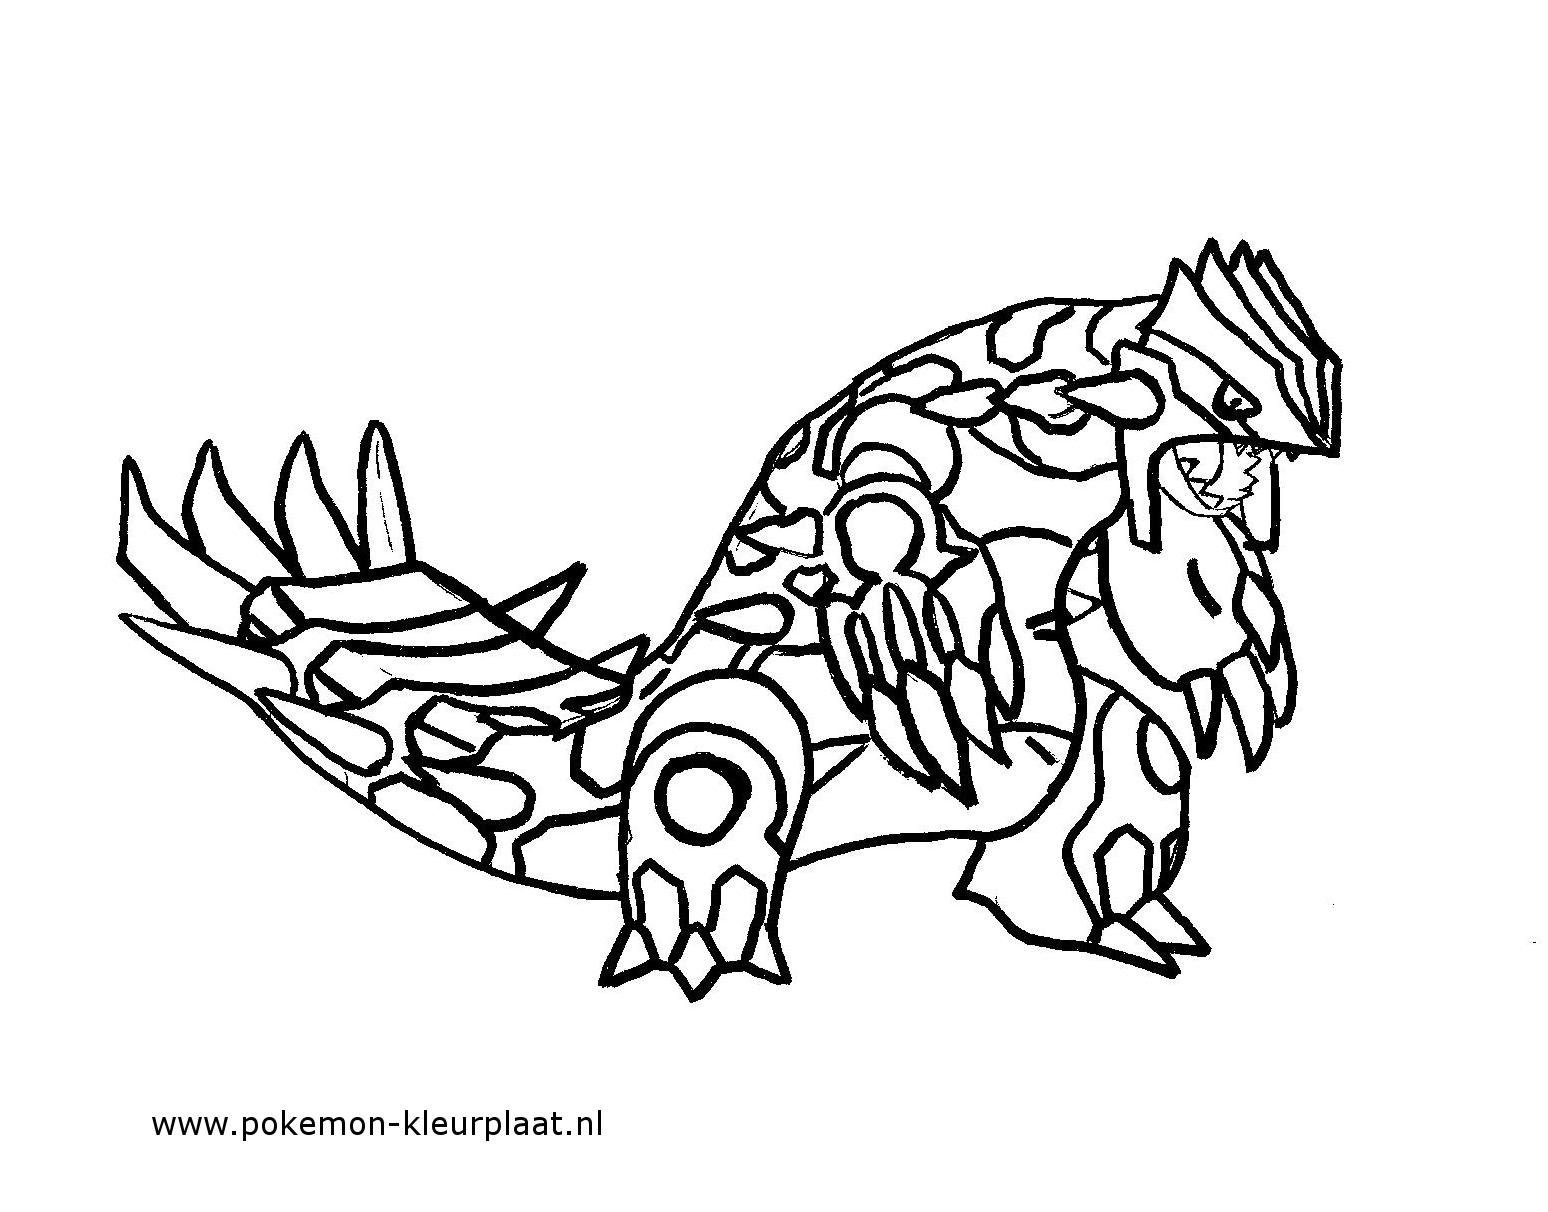 Brilliant Picture of Charizard Coloring Pages - birijus.com | 1212x1548